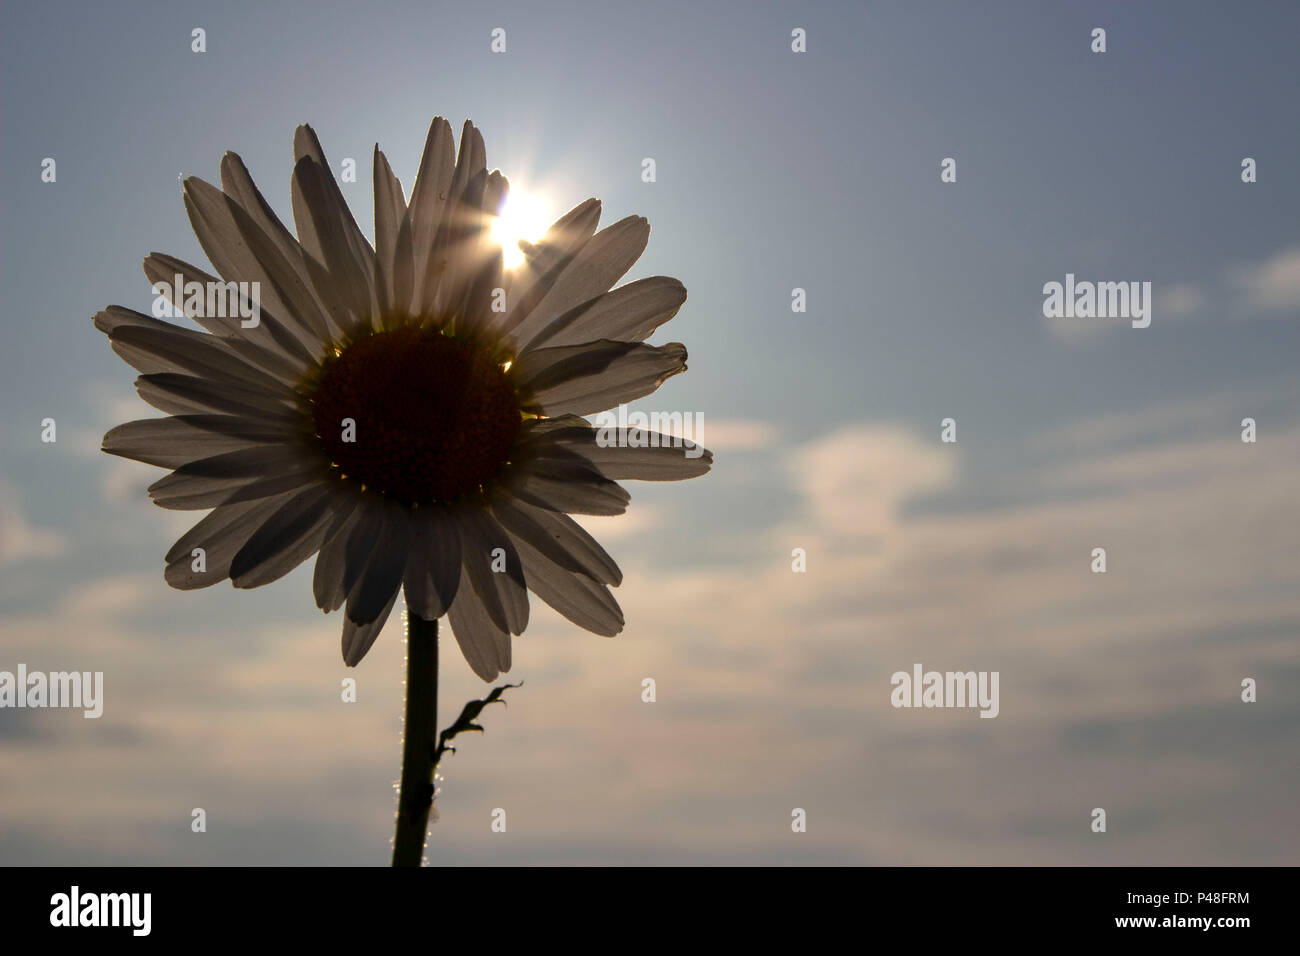 Single Daisy flower in the evening sunlight - Stock Image